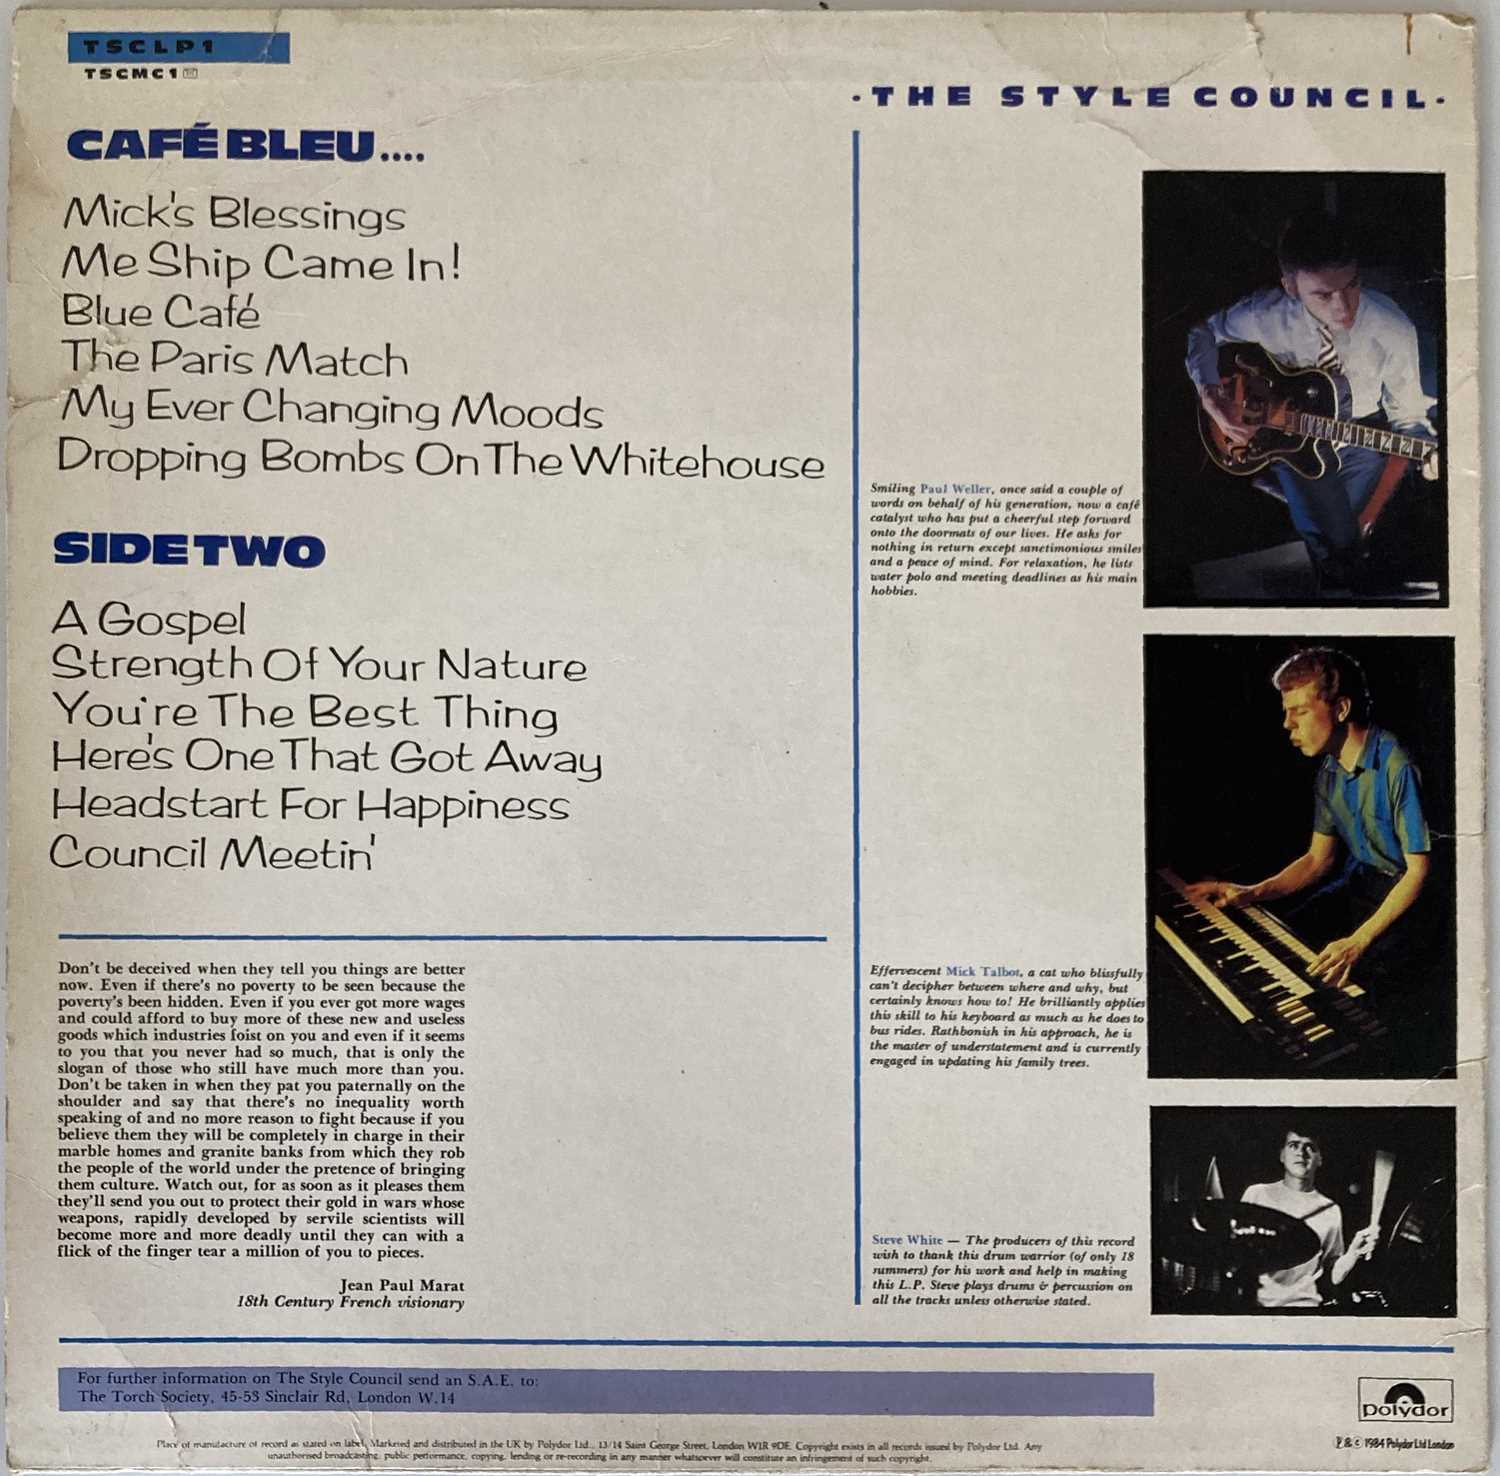 THE STYLE COUNCIL - SIGNED LPS. - Image 2 of 8